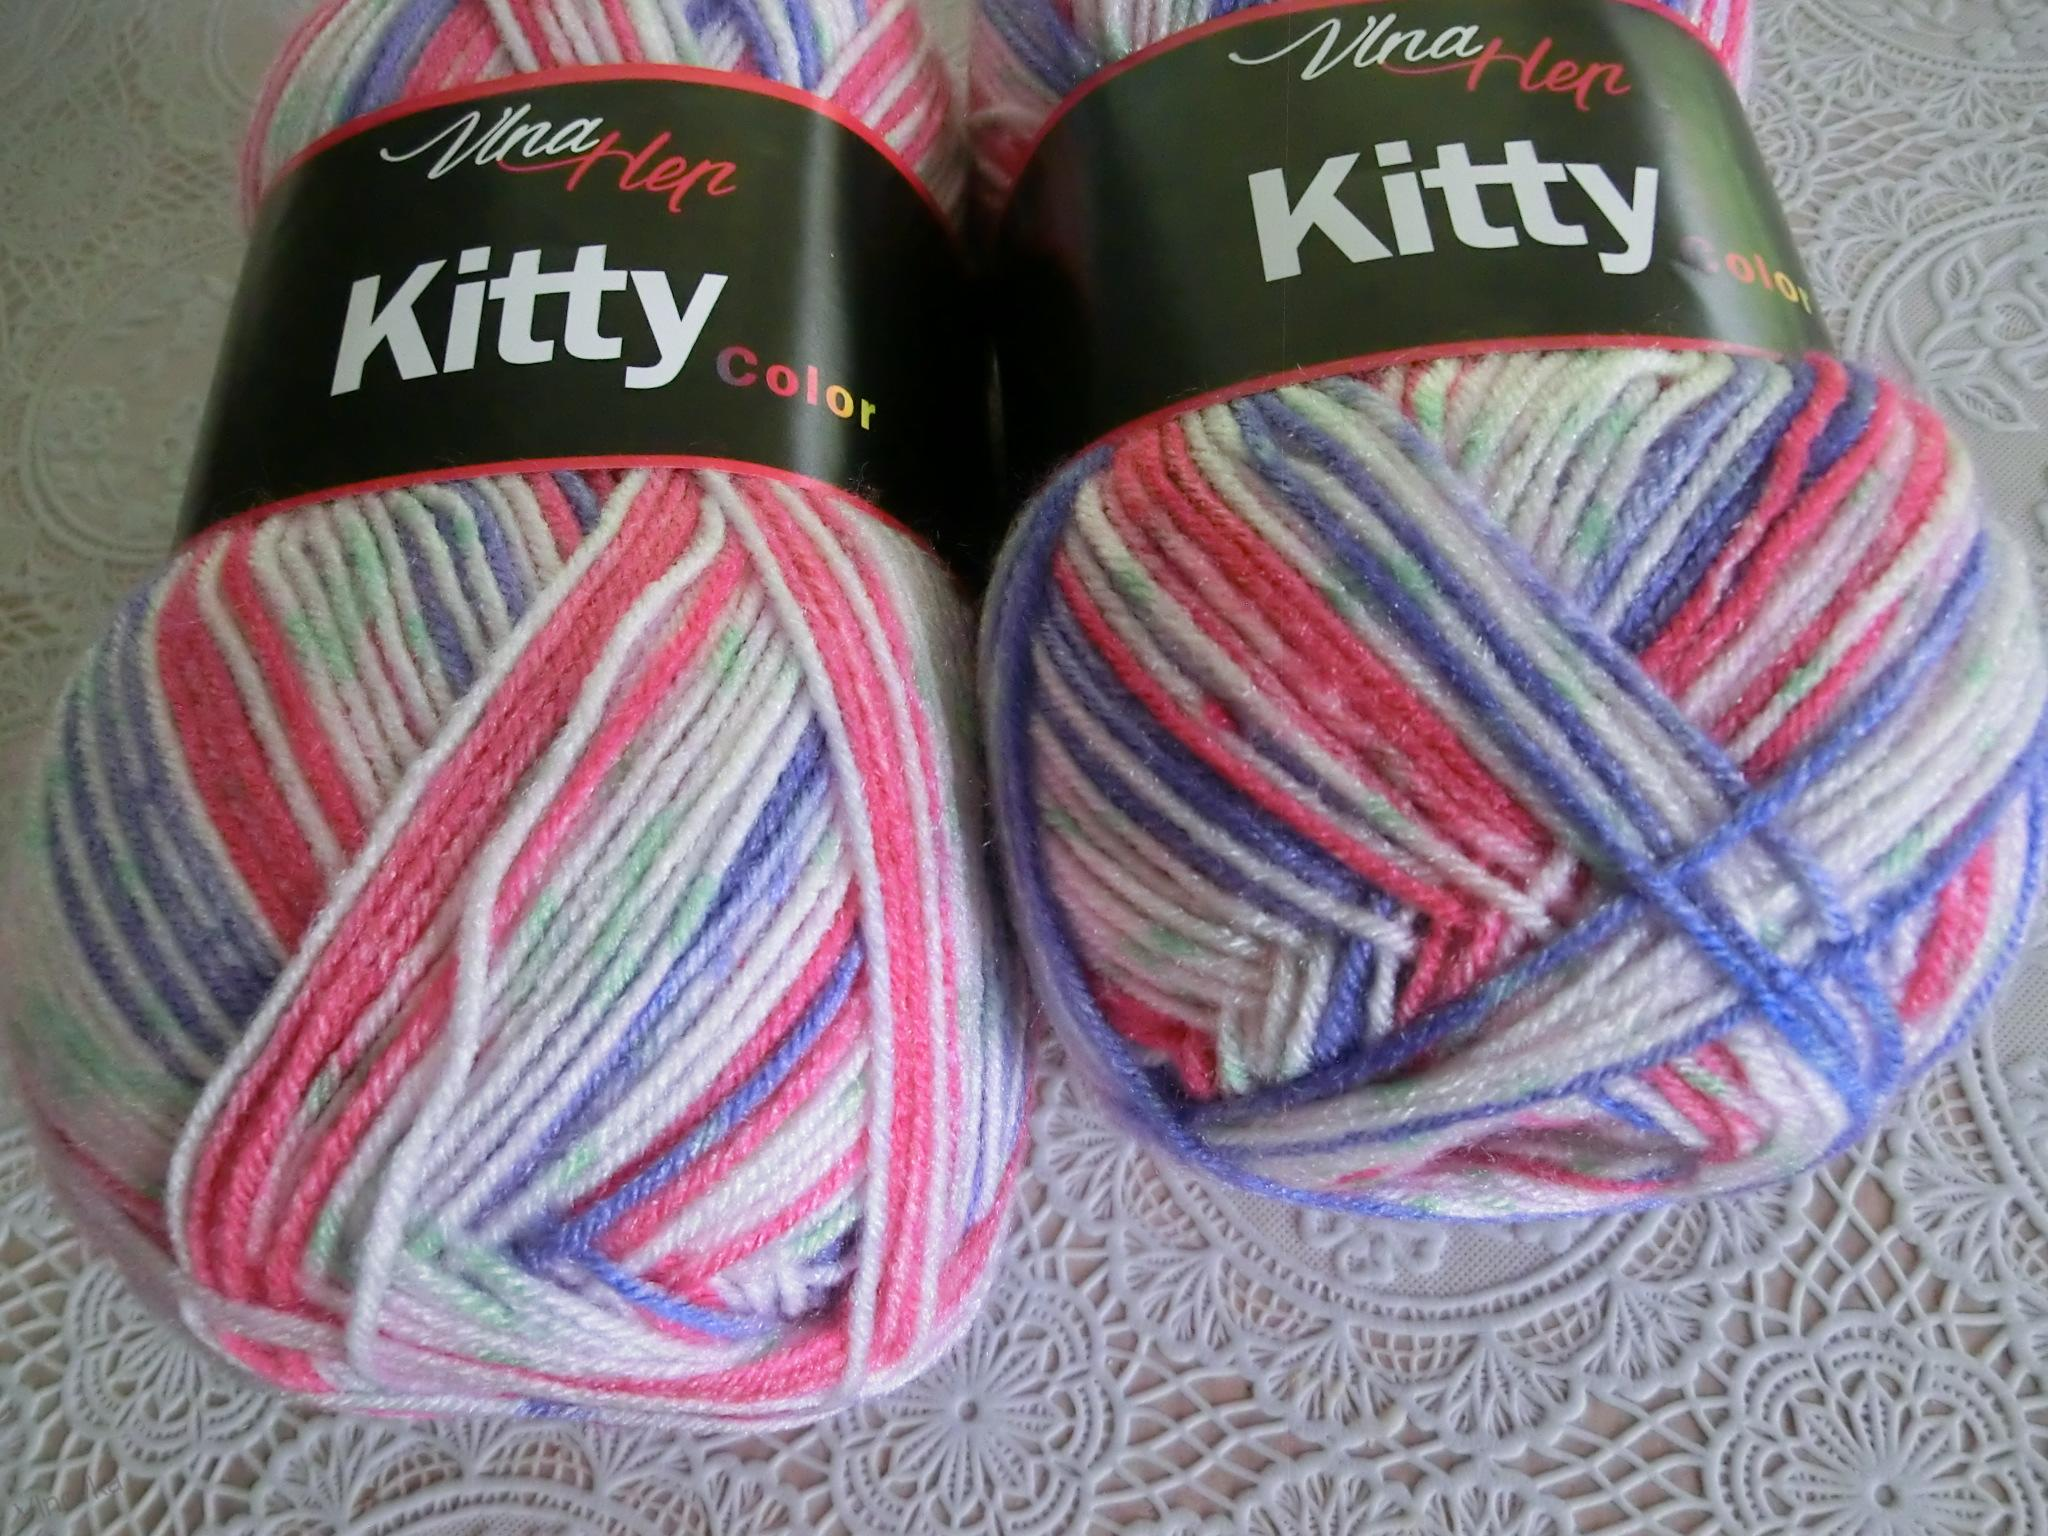 Kitty color 5306